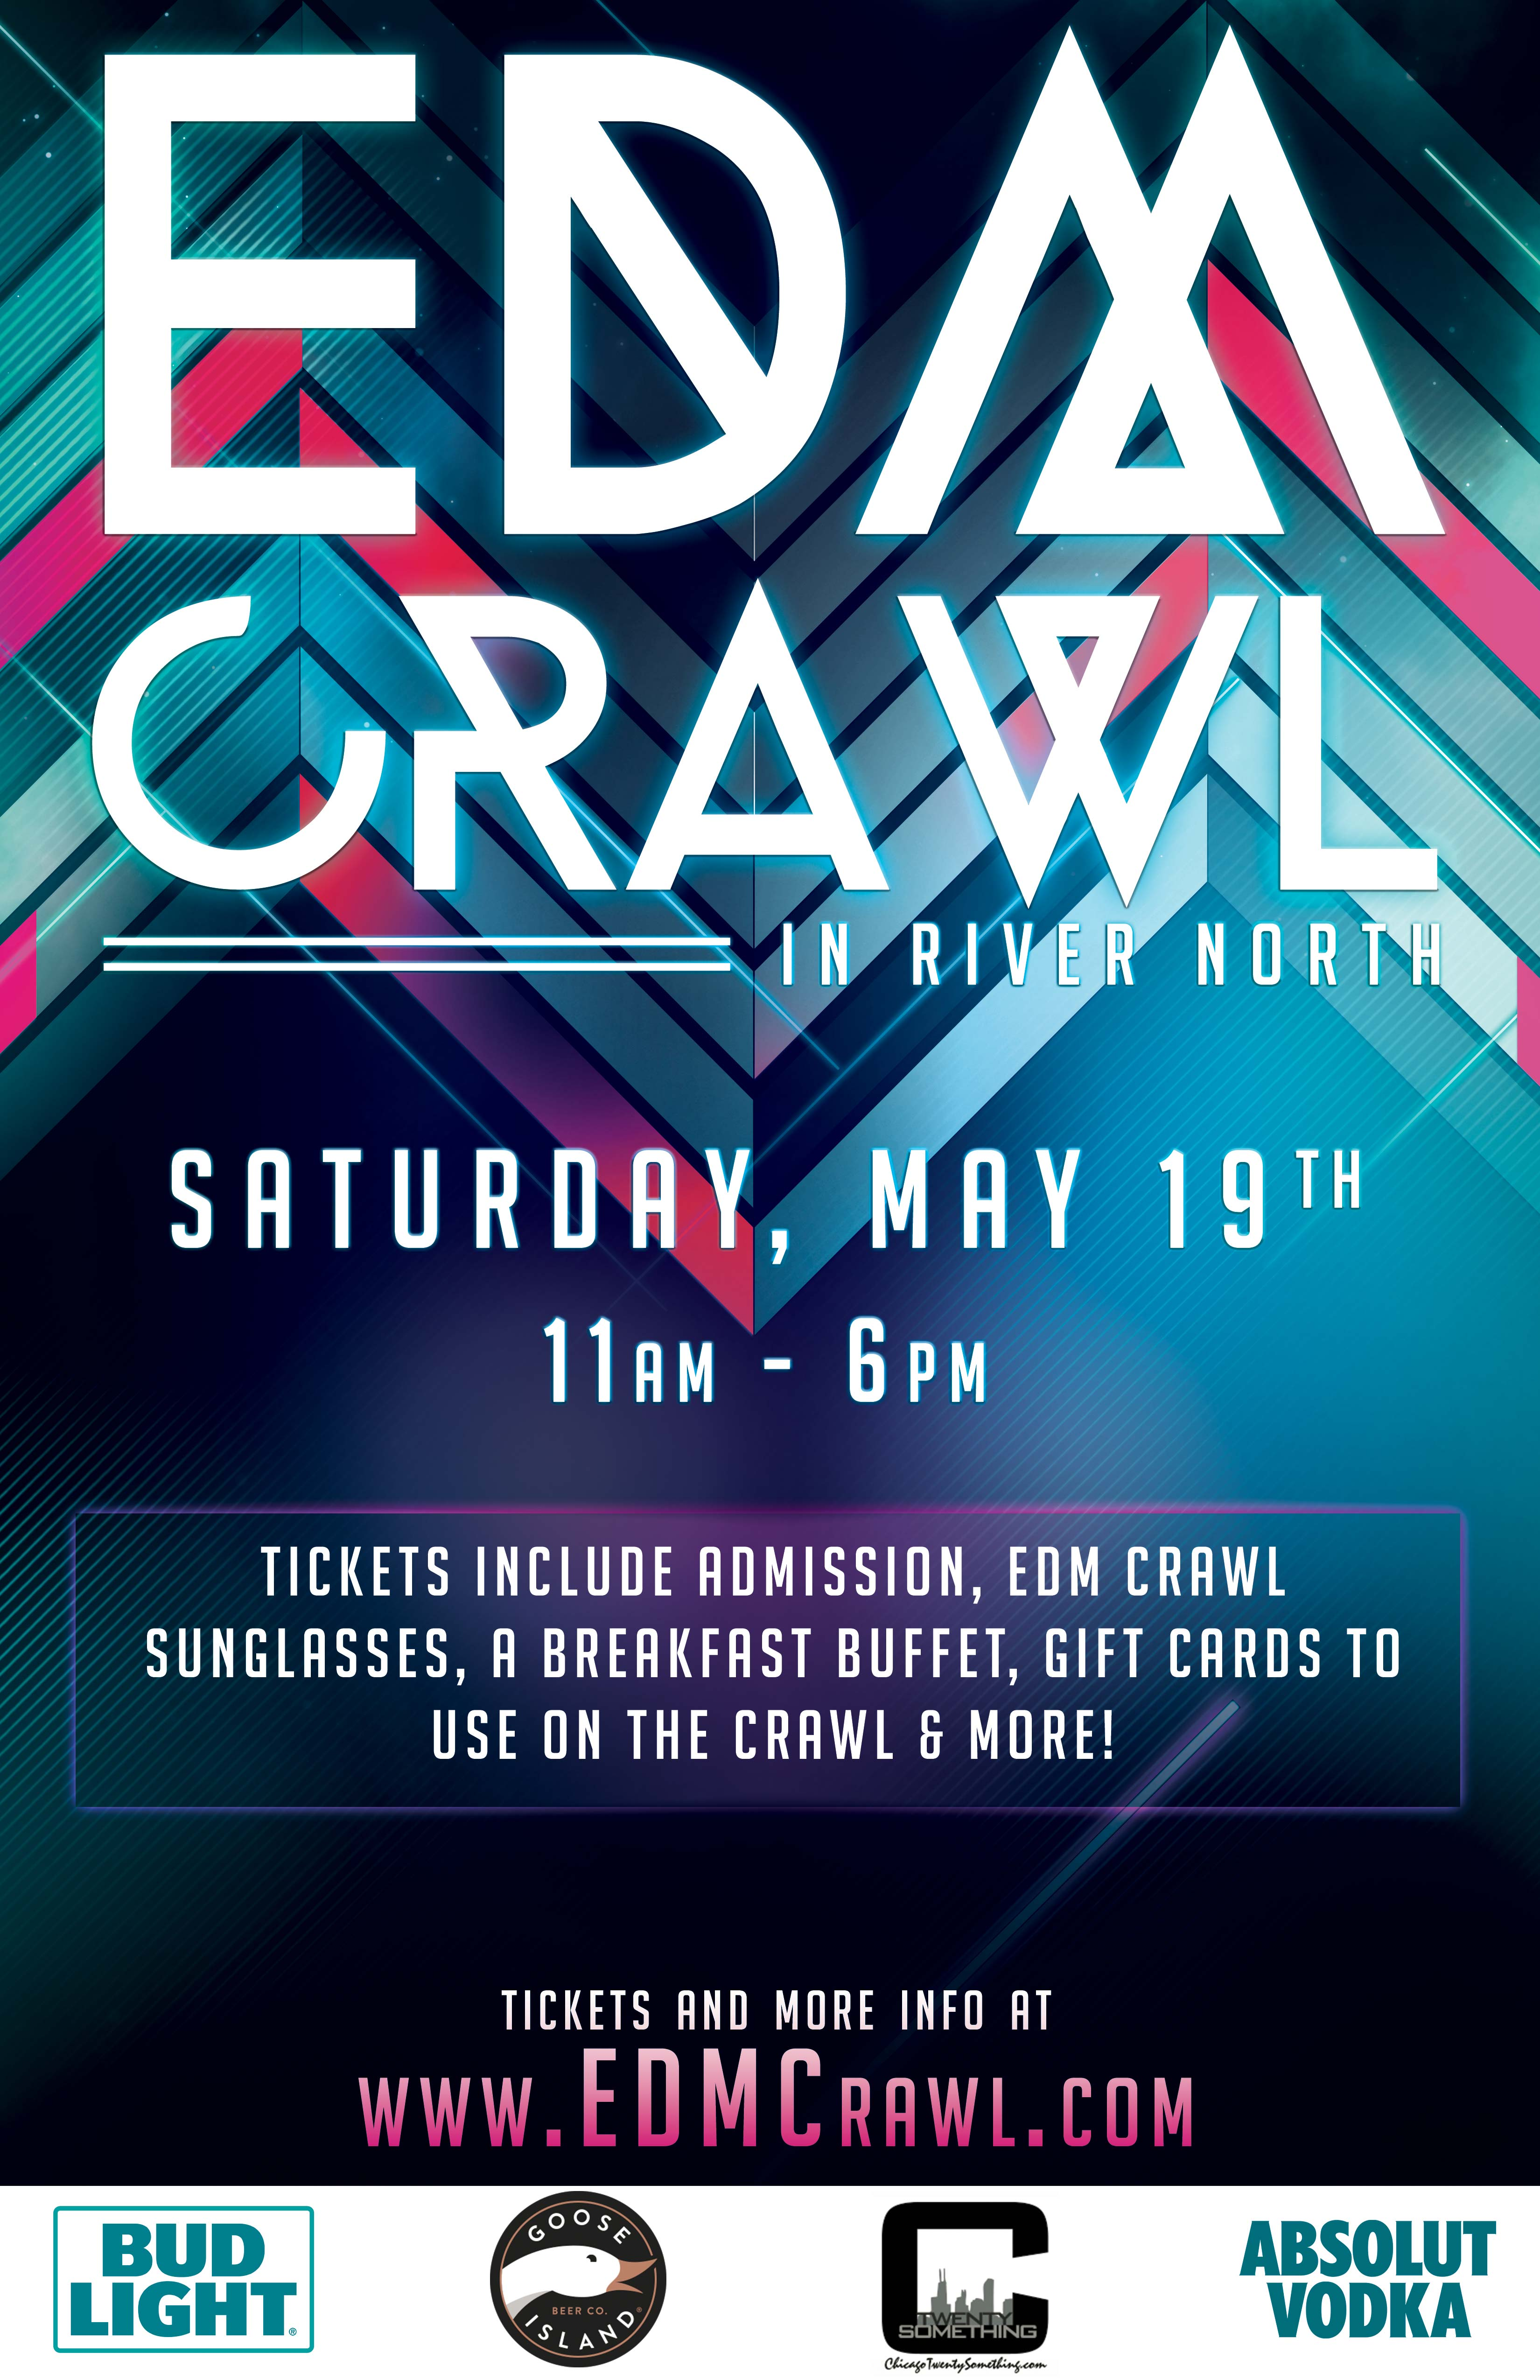 Electronic Dance Music (EDM) Bar Crawl Party in Chicago - Tickets include Admission, a Breakfast Buffet, three $4 Gift Cards to use on the crawl, Commemorative Sunglasses, Glowsticks, Giveaways & MORE!